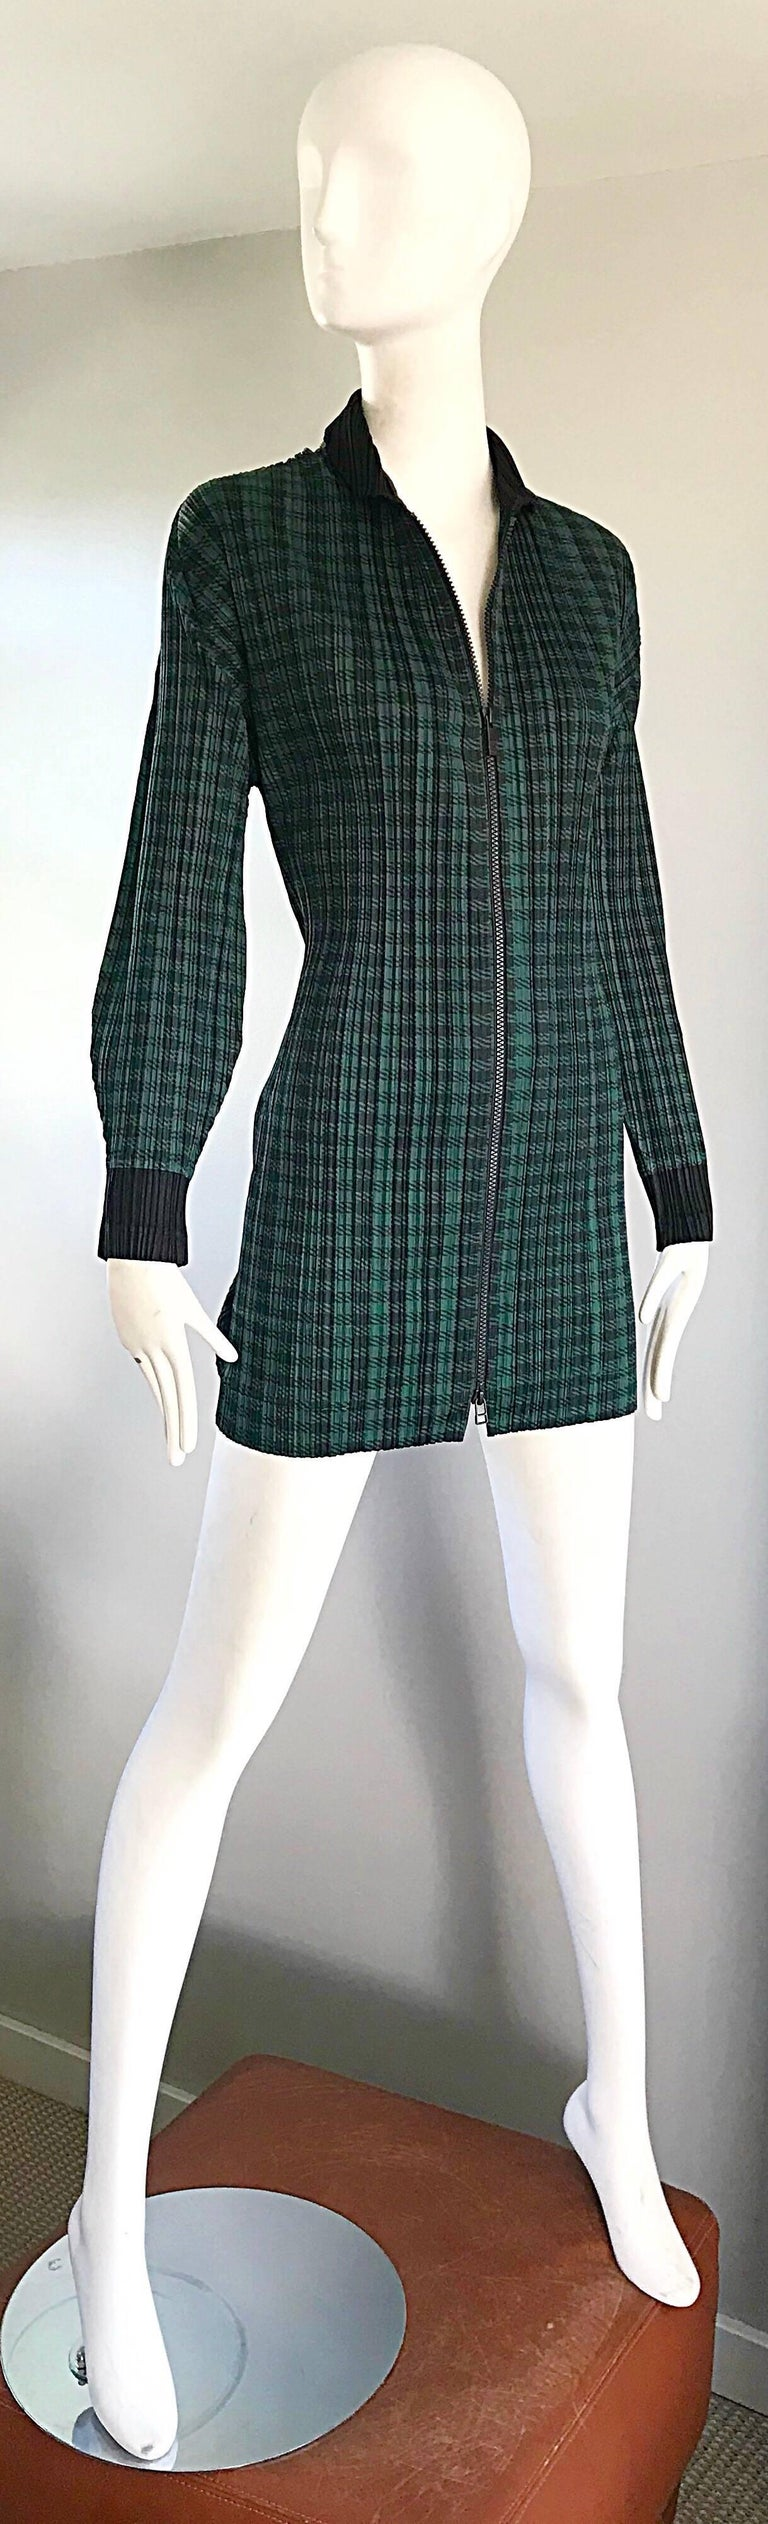 Vintage Issey Miyake Pleats Please 90s Green Black Checkered Jacket Mini Dress For Sale 4